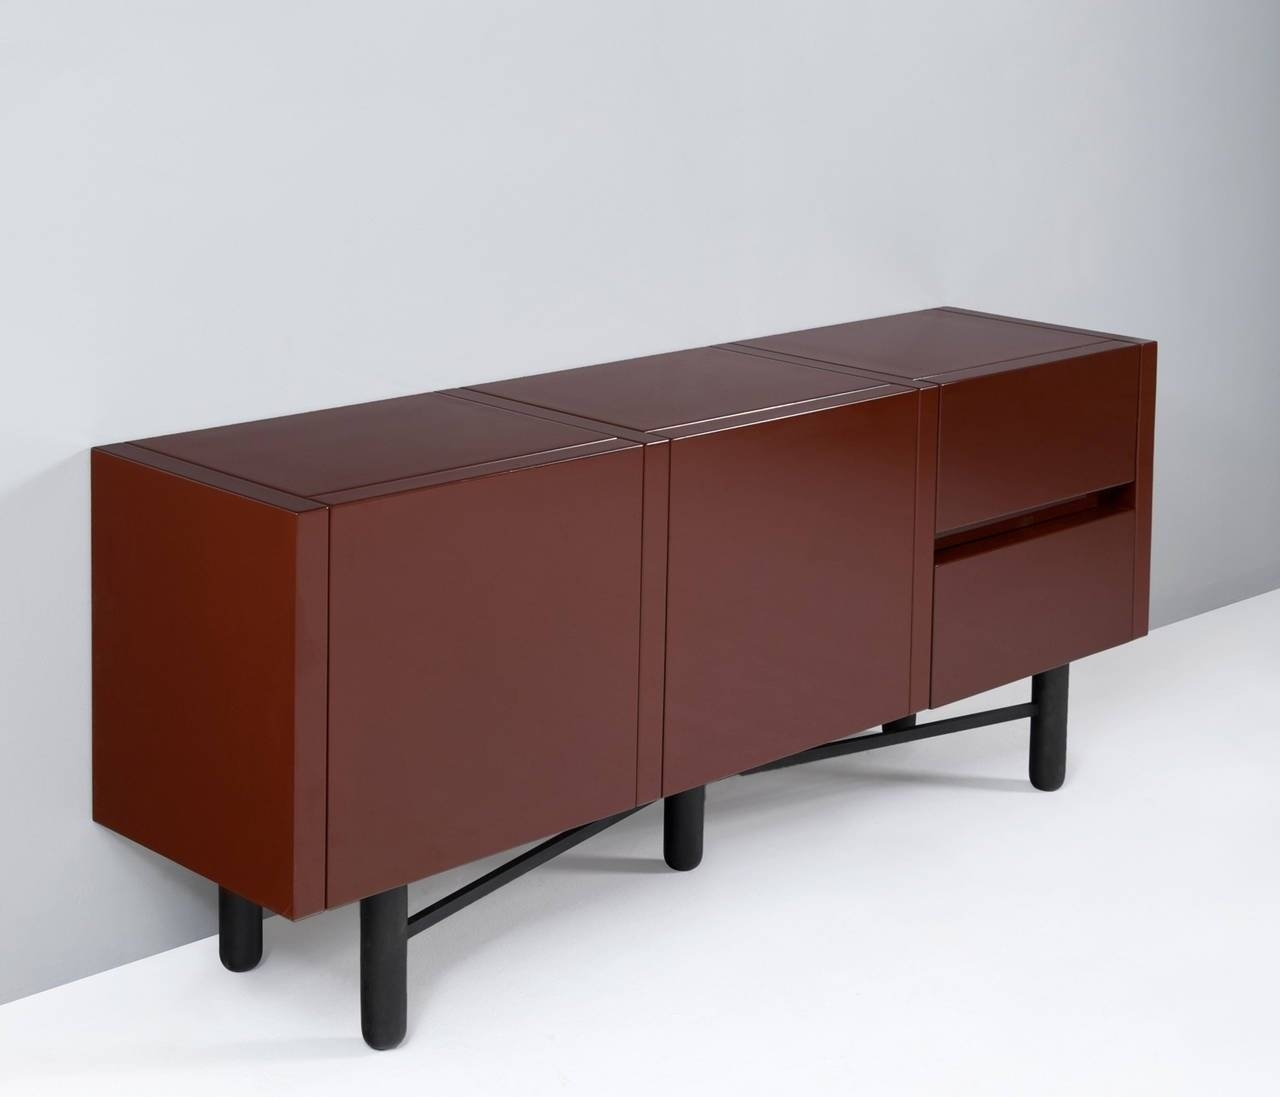 Roche Bobois Red Lacquered High Gloss Sideboard For Sale At 1Stdibs inside Black Gloss Sideboards (Image 24 of 30)